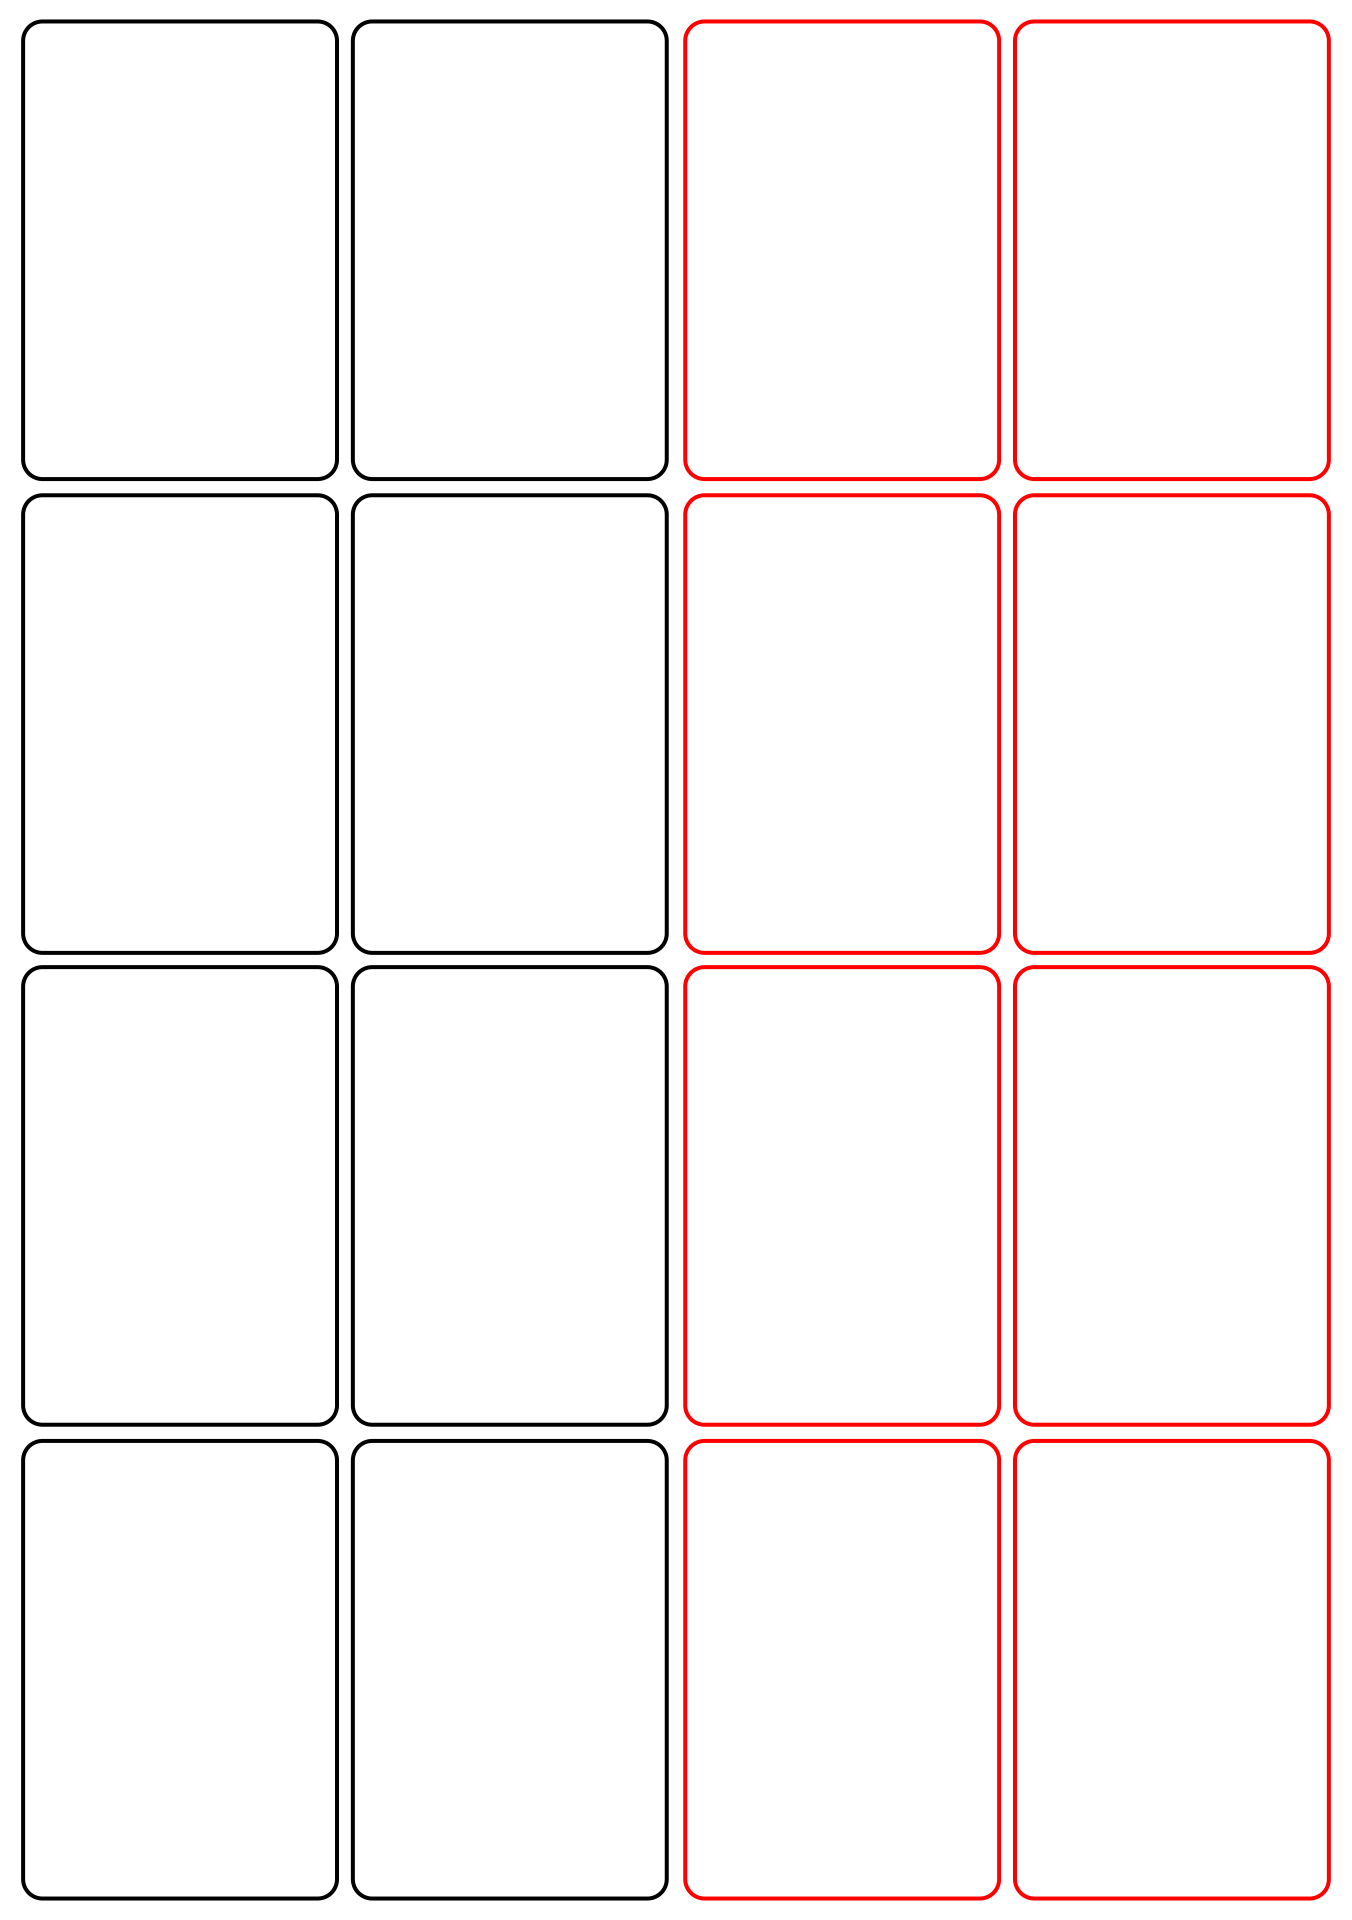 8 Best Images of Blank Playing Card Printable Template For